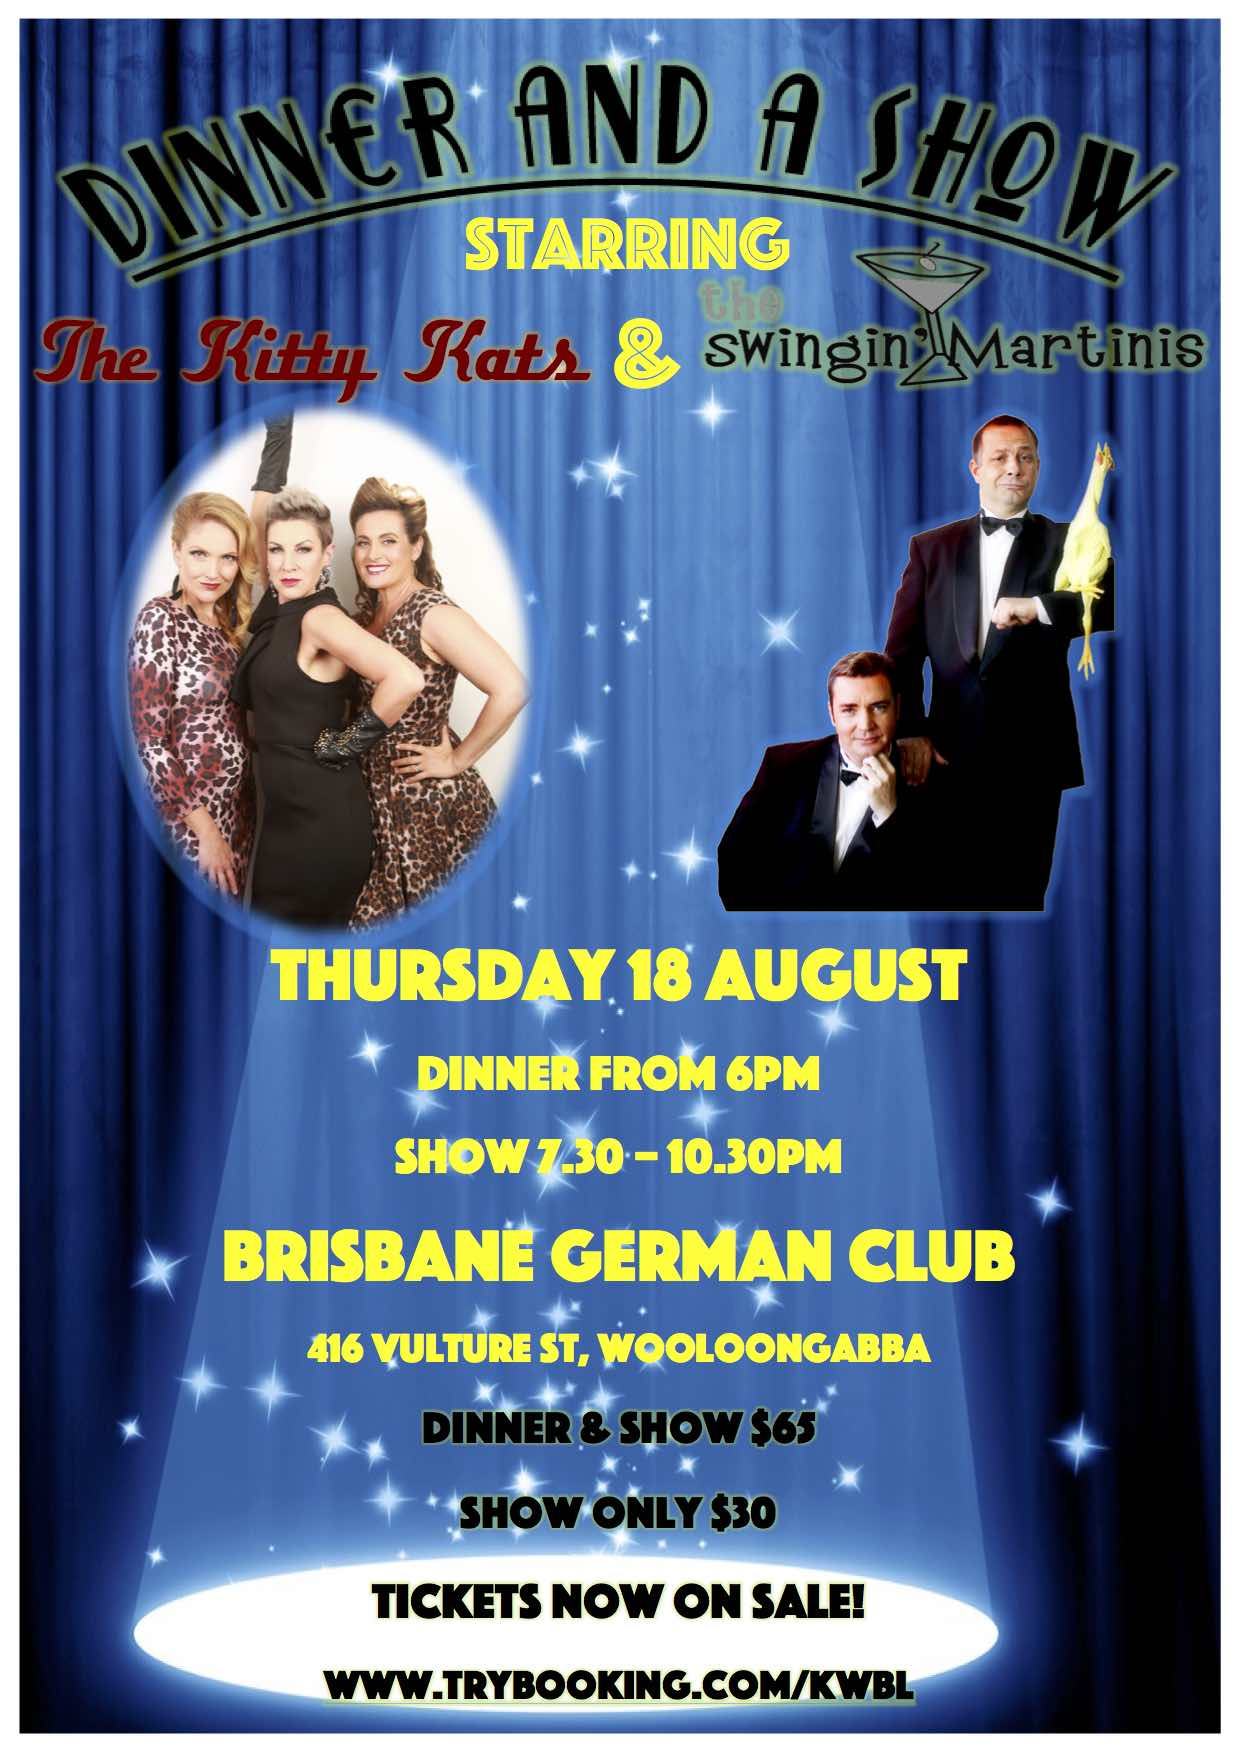 dinner and show brisbane